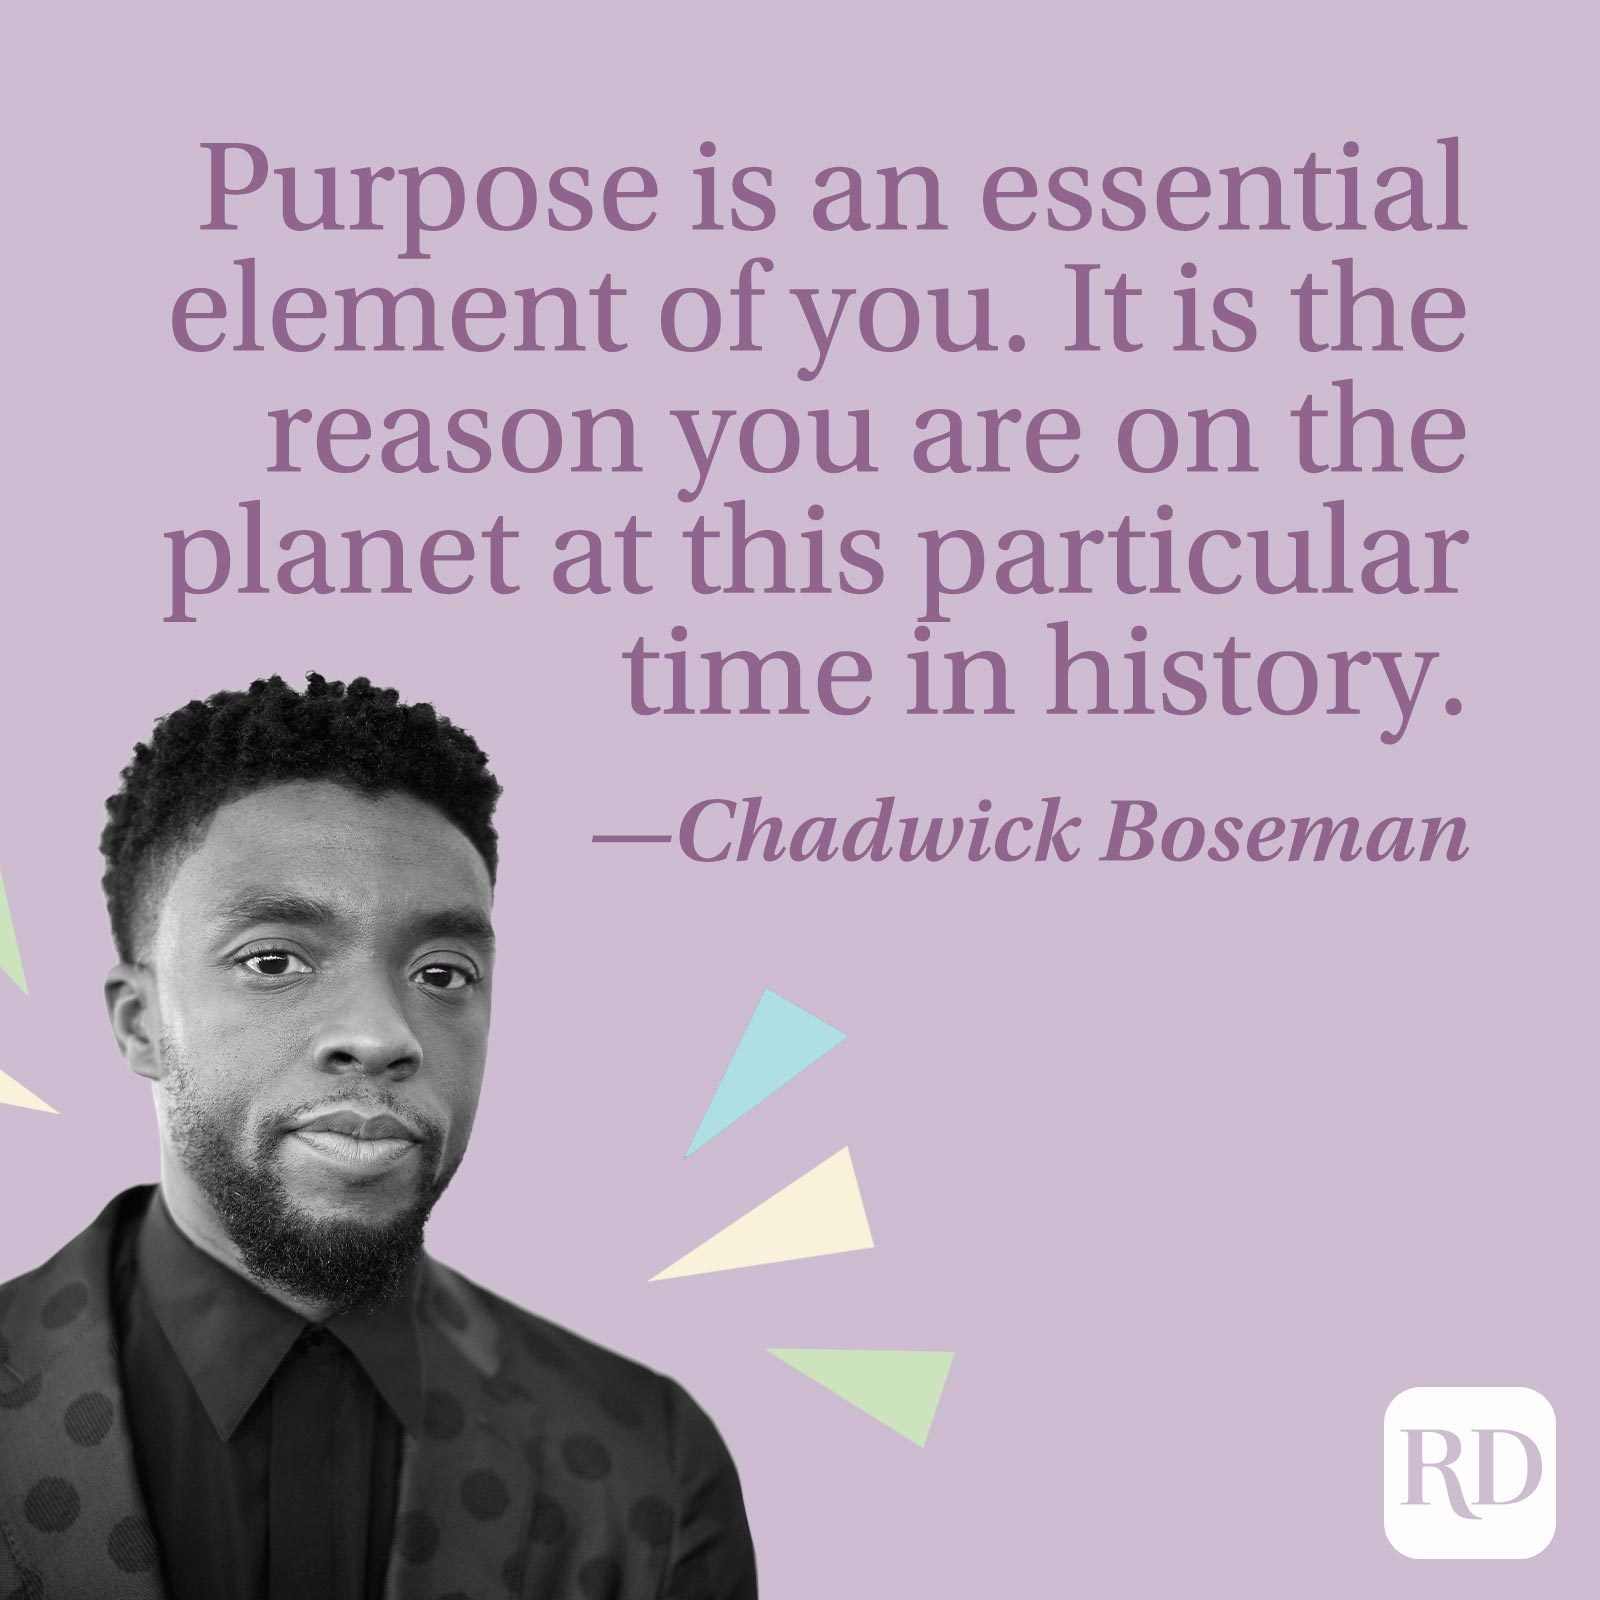 """""""Purpose is an essential element of you. It is the reason you are on the planet at this particular time in history."""" —Chadwick Boseman"""